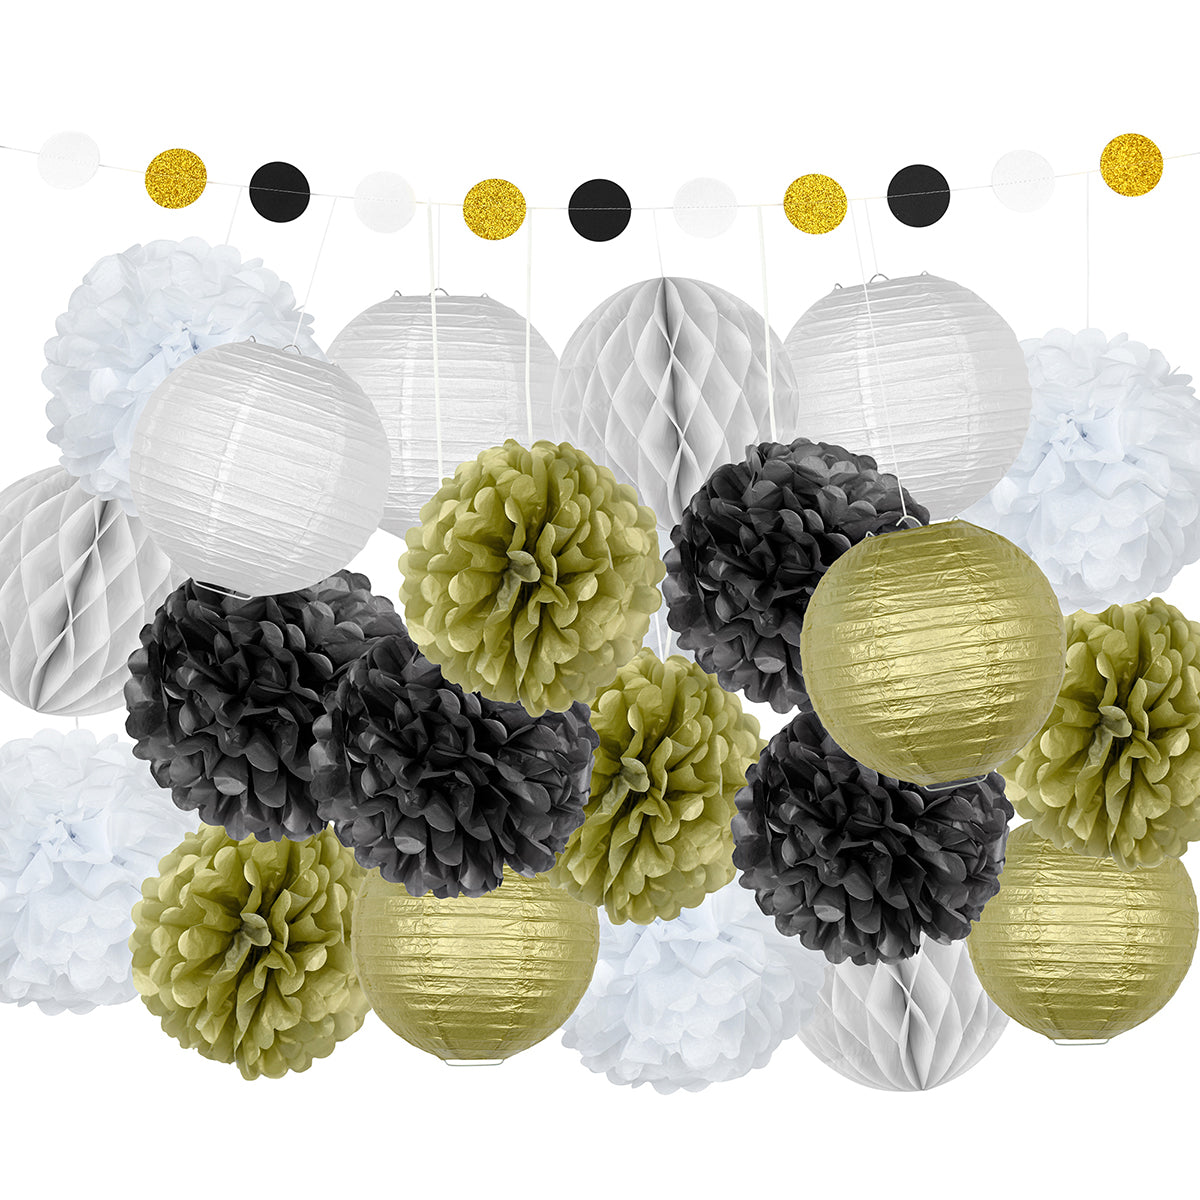 A party decoration set combine of 12 tissue paper pom poms, 6 lanterns, 4 honeycomb ball and a circle paper garland in gold, black and white color.